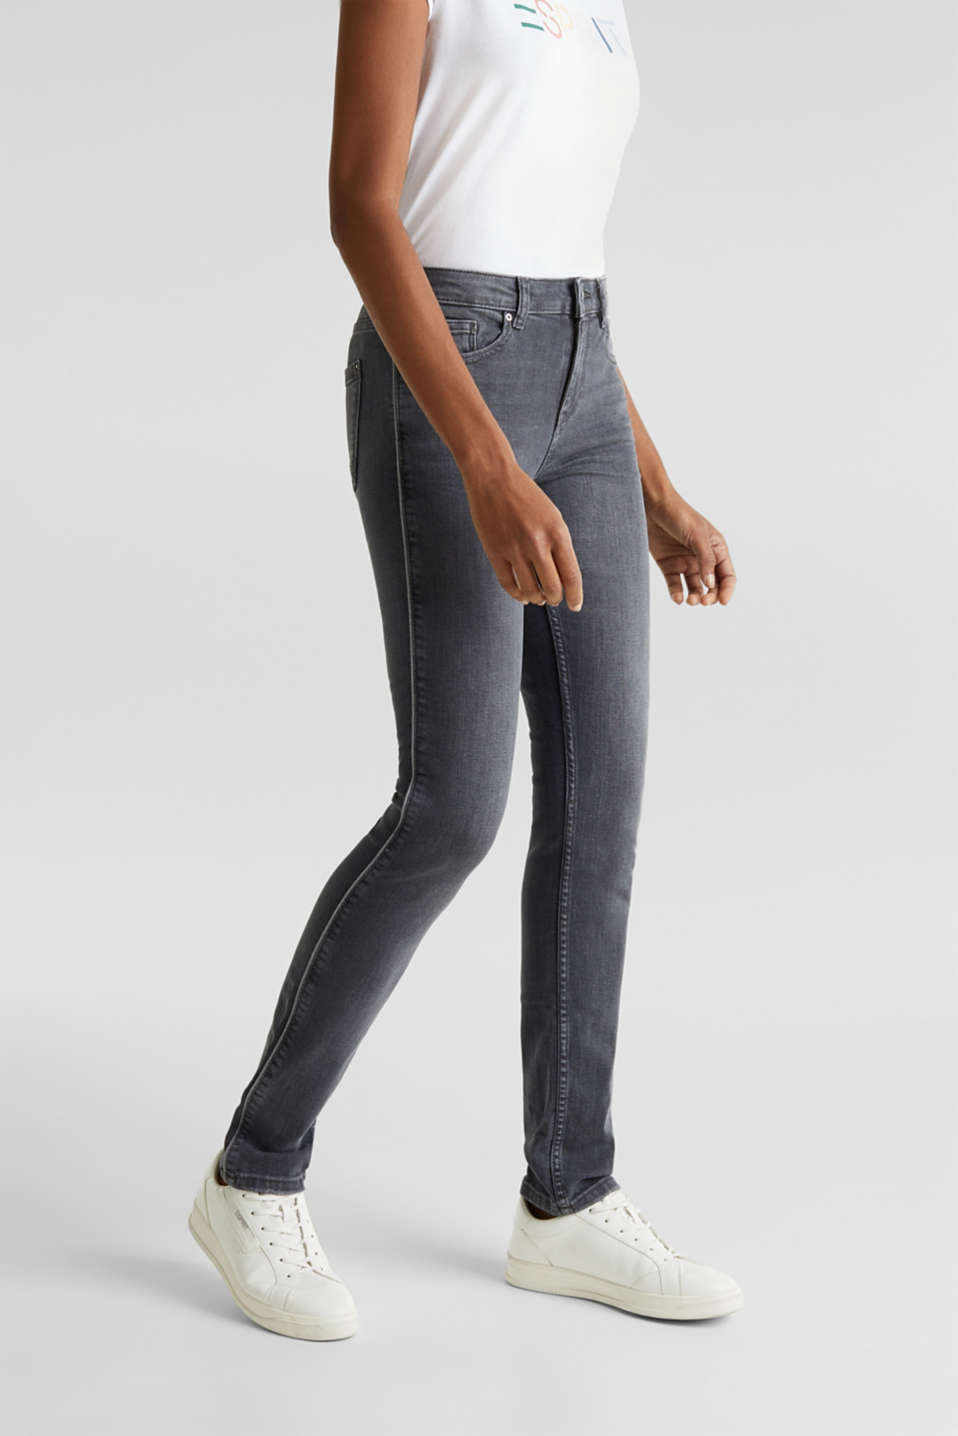 Esprit - Grey jeans with piping